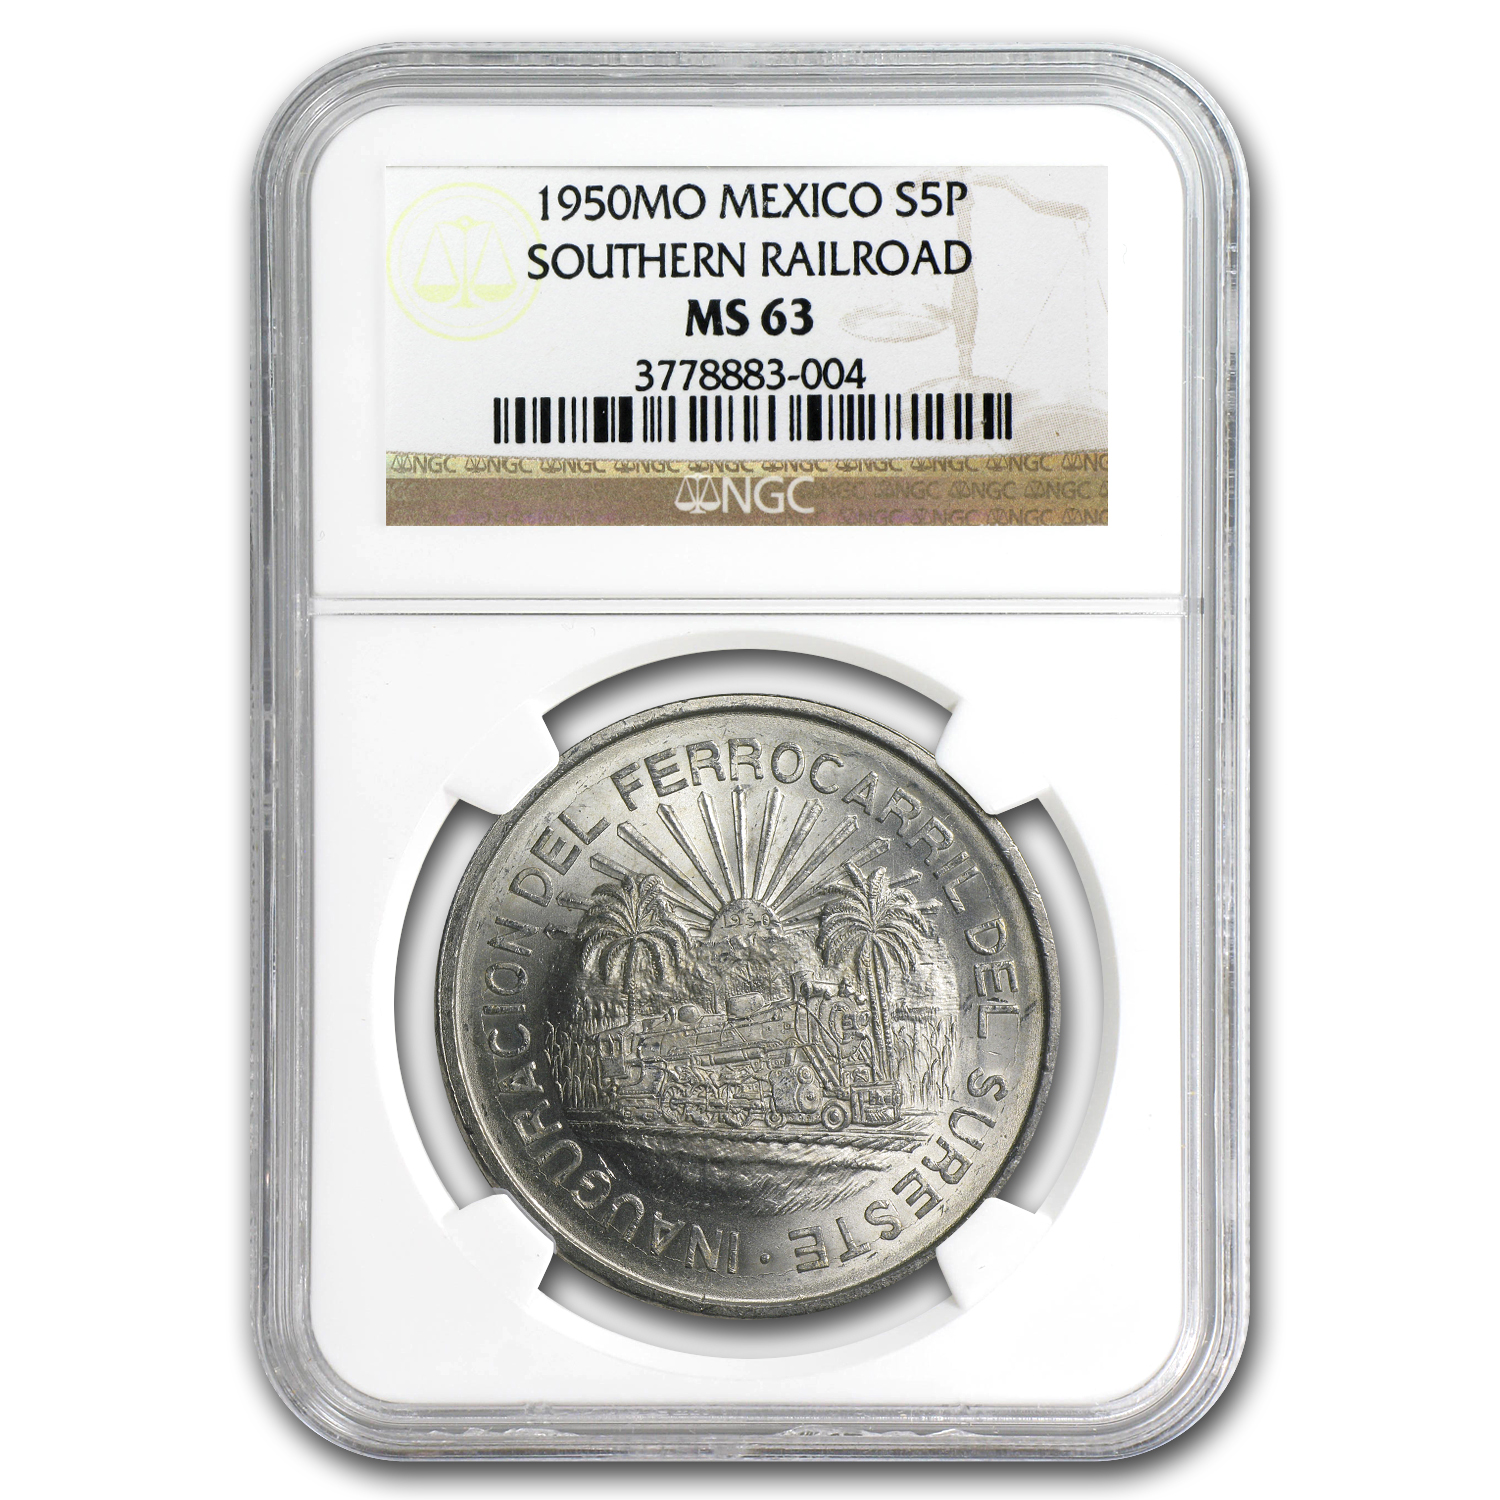 1950 Mexico Silver 5 Pesos Southern Railroad MS-63 NGC